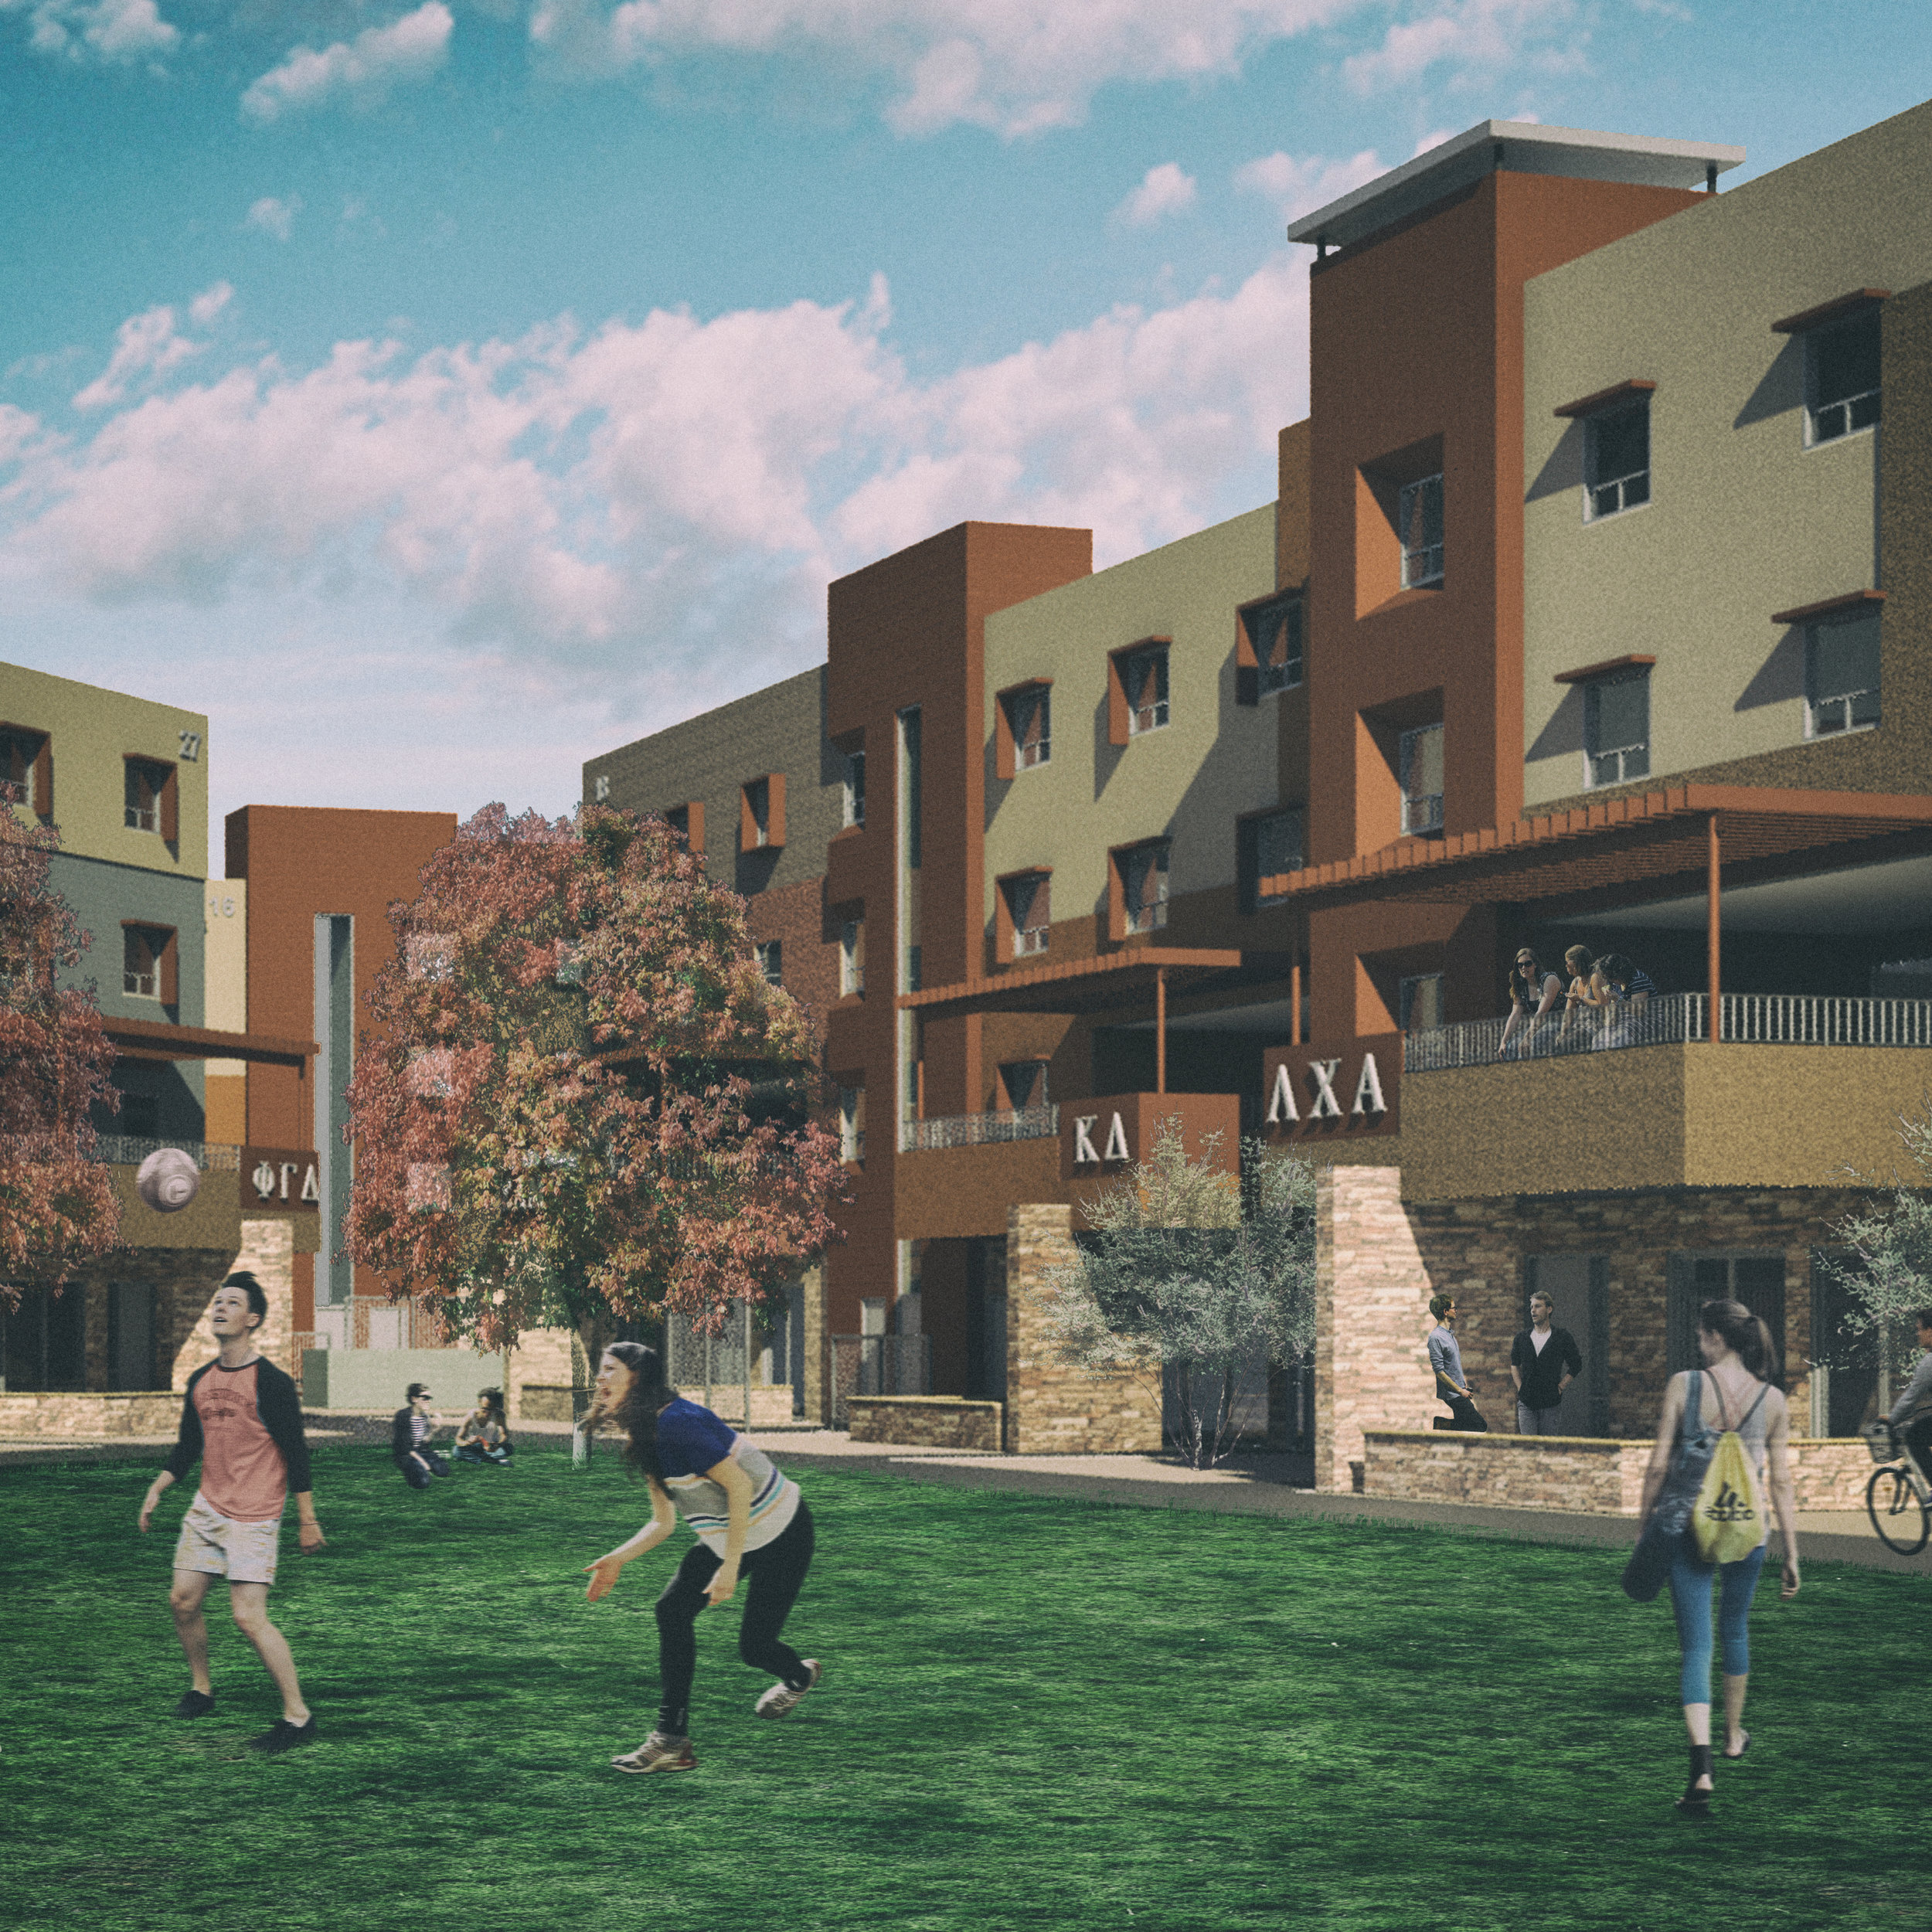 Greek Leadership Village - Tempe328,881 sq ft$82,600,000End Date: August 2018